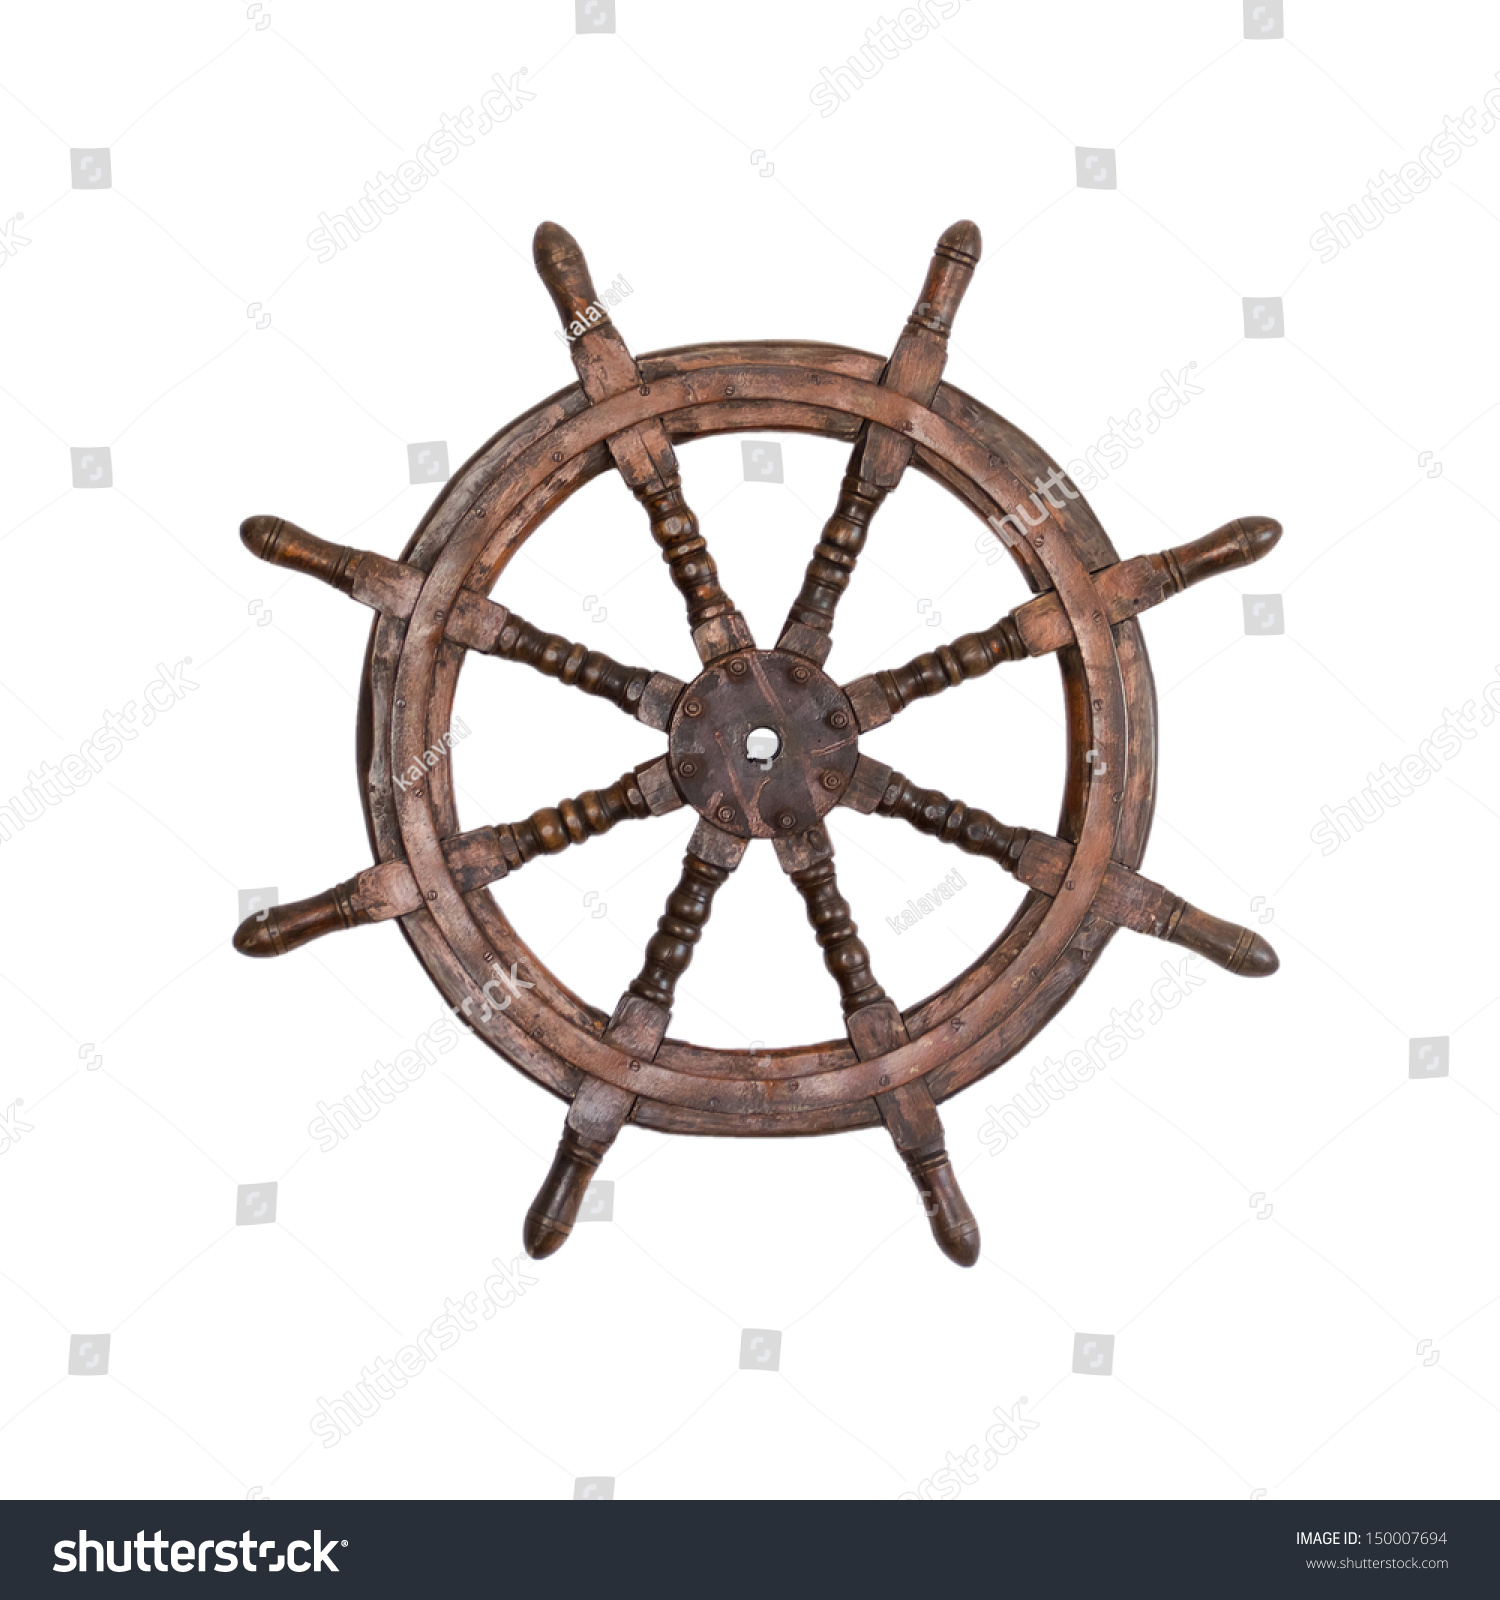 Old steering wheel isolated